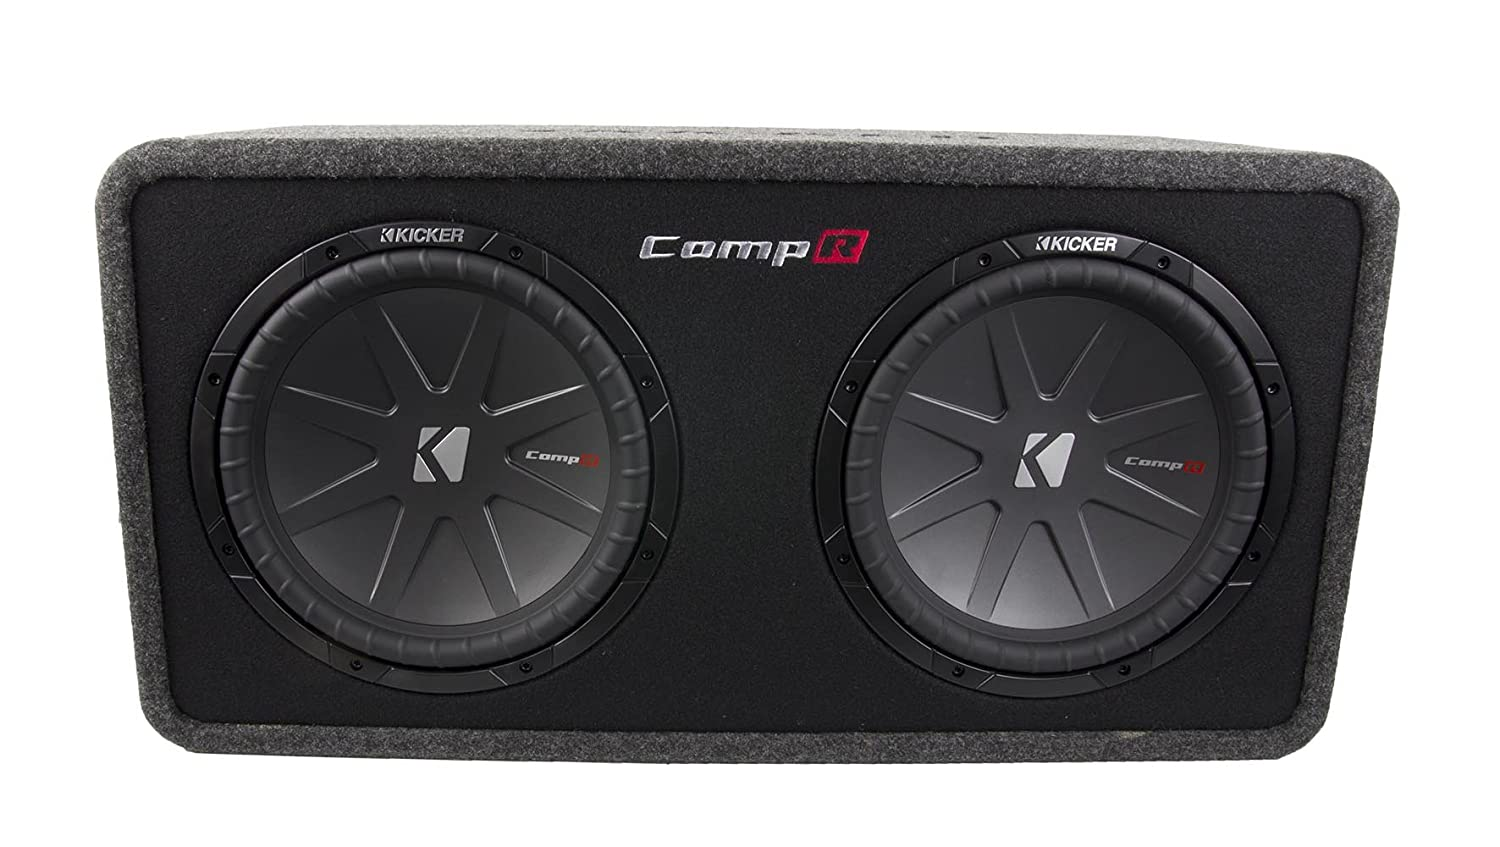 Kicker 3200w Loaded Enclosure 3000w Amplifier Kit Addition 4 Ohm Sub Wiring Diagram In Subwoofer Certified Refurbished Musical Instruments